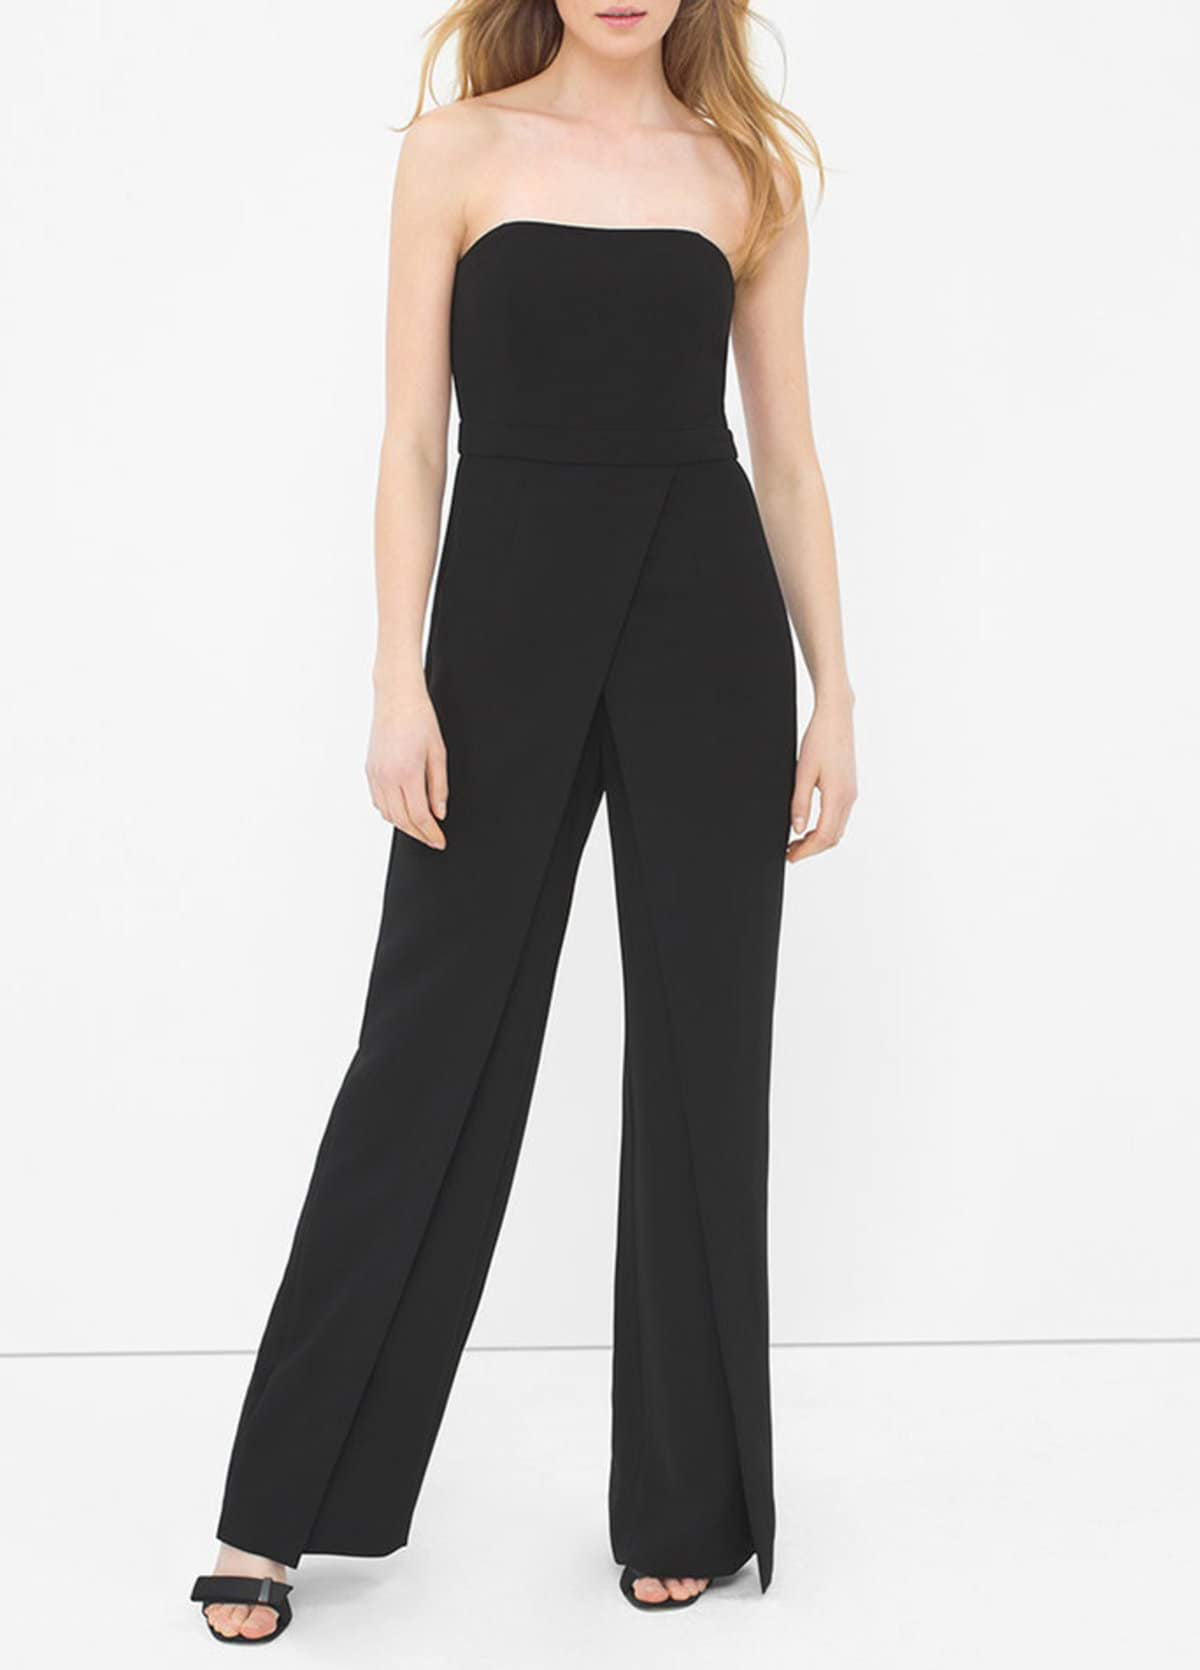 121516-jumpsuits-for-women-2